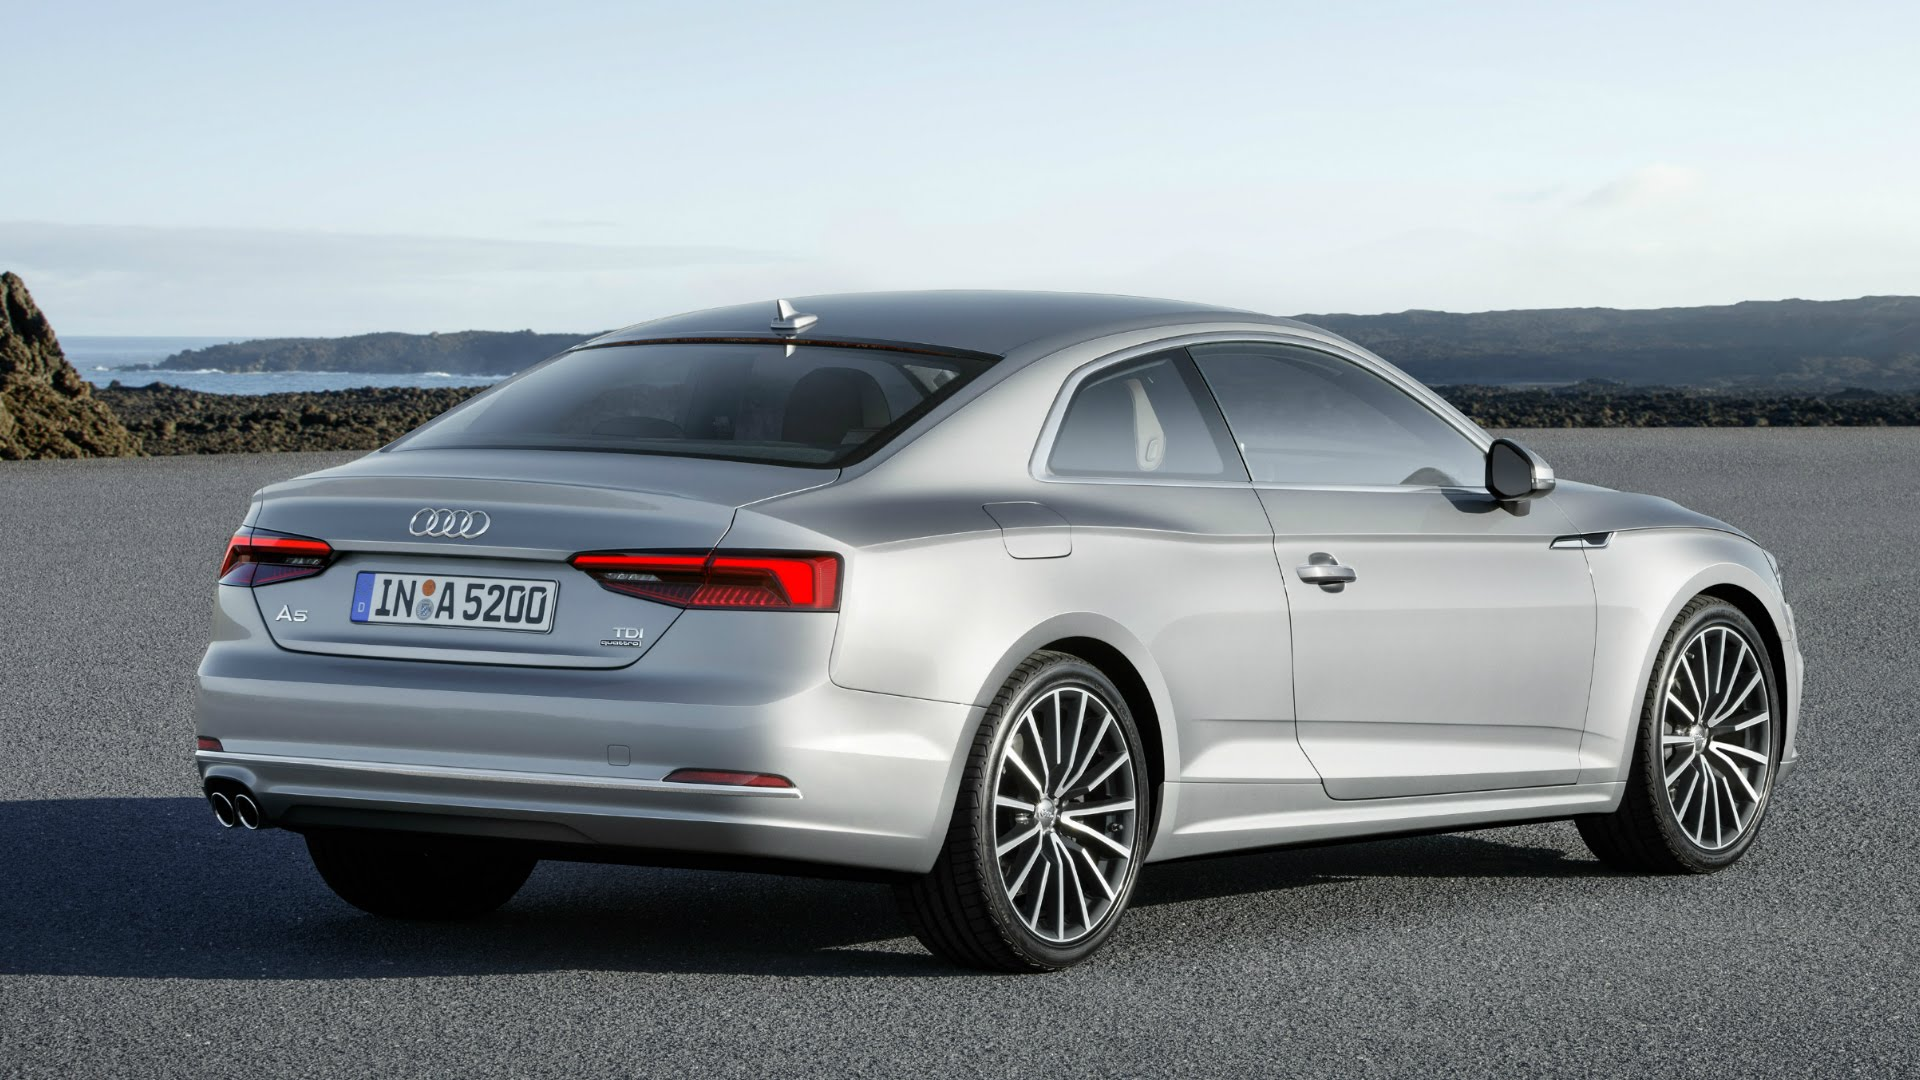 Audi A5 I Restyling 2011 - 2016 Coupe #5